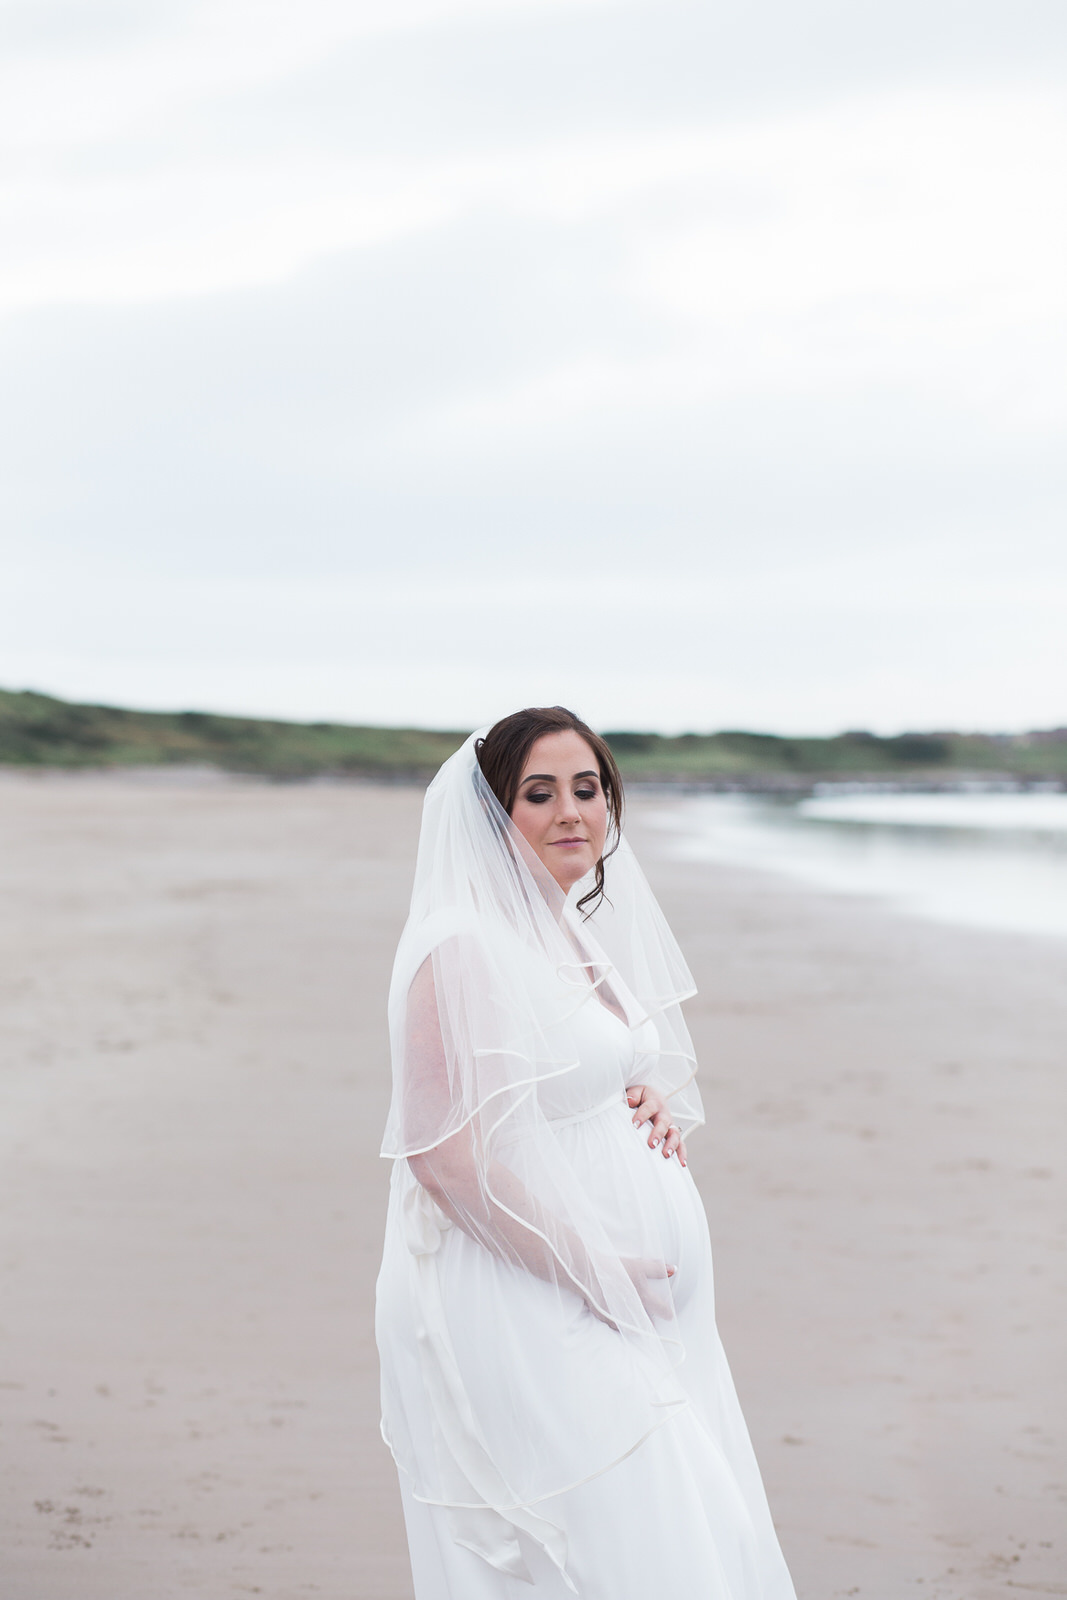 pregnant bride, beautiful bride, bride on the beach, Banff springs, wedding photographer aberdeen, Aberdeenshire wedding photography